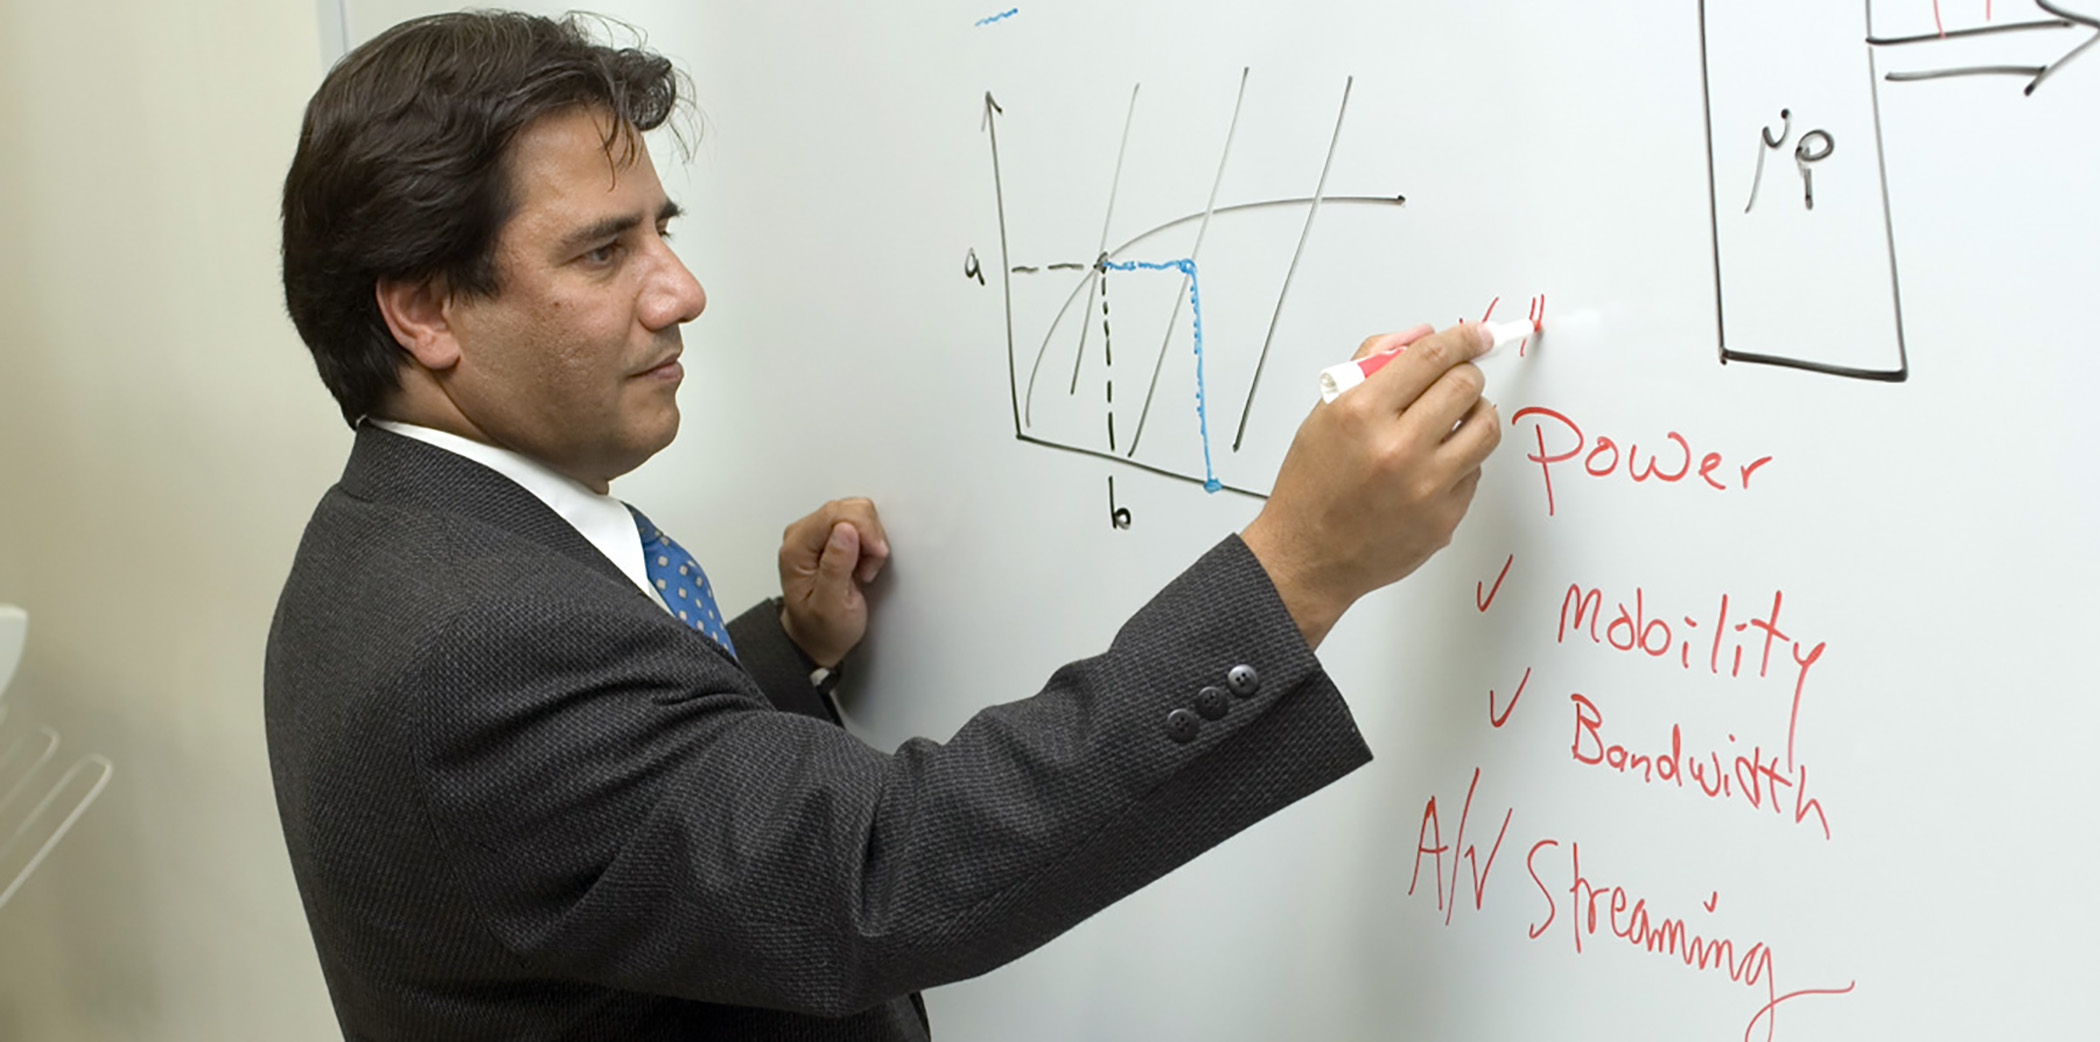 Professor Sharif writing on a whiteboard